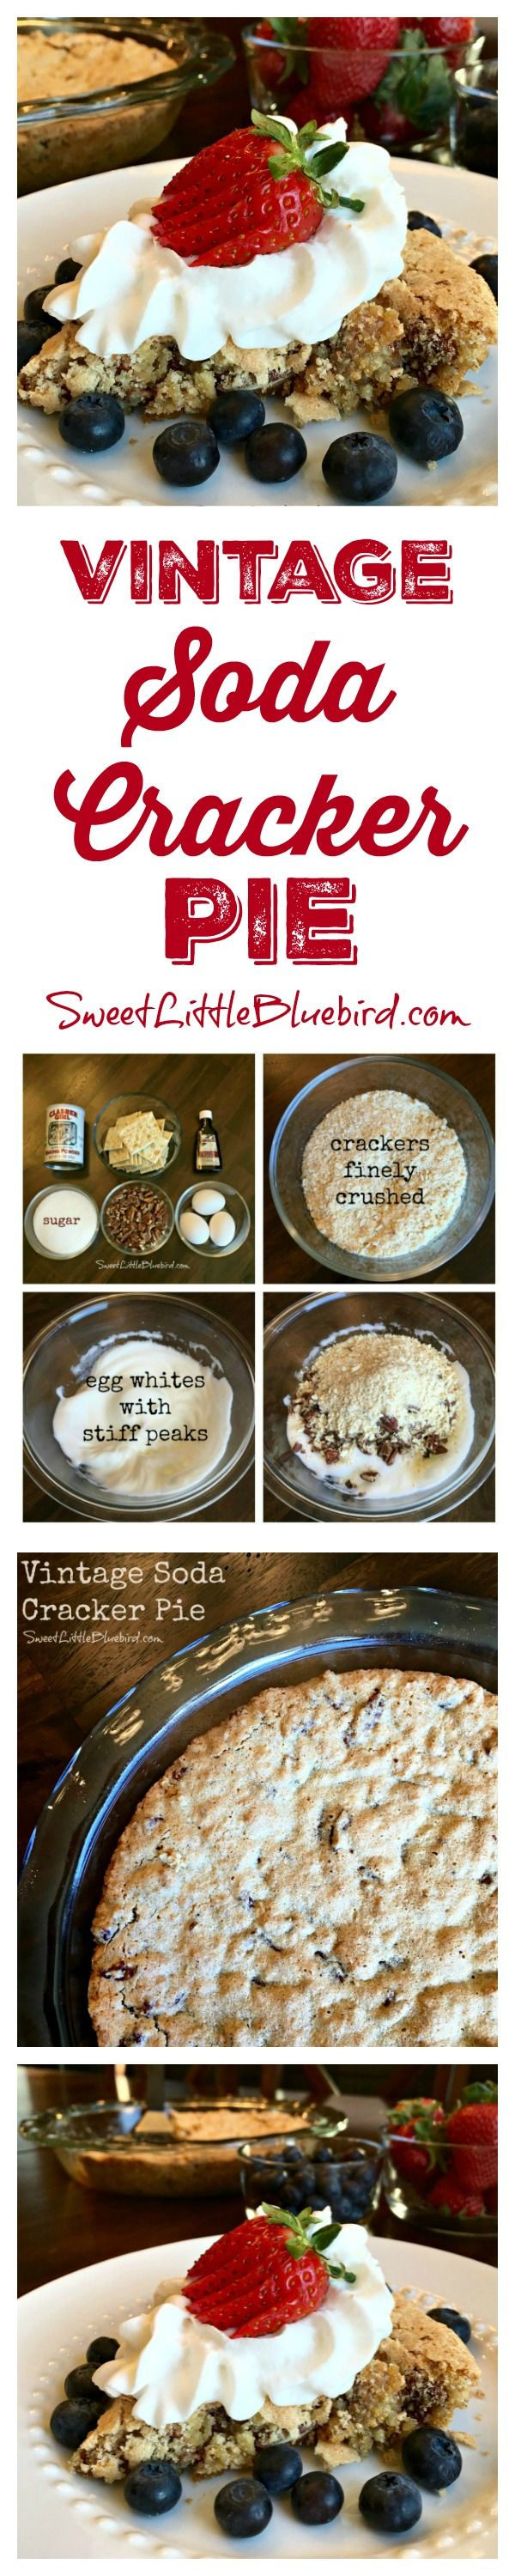 VINTAGE SODA CRACKER PIE (a.k.a,  RITZ CRACKER PIE)  - This is the best pie and so simple to make! Don't be scared by the name, even though there are crackers in the pie, you don't taste them at all. This homey desert tastes a little like pecan pie, but not nearly as sweet...it's just right...so so right. I love this oldie but goodie cherished recipe!